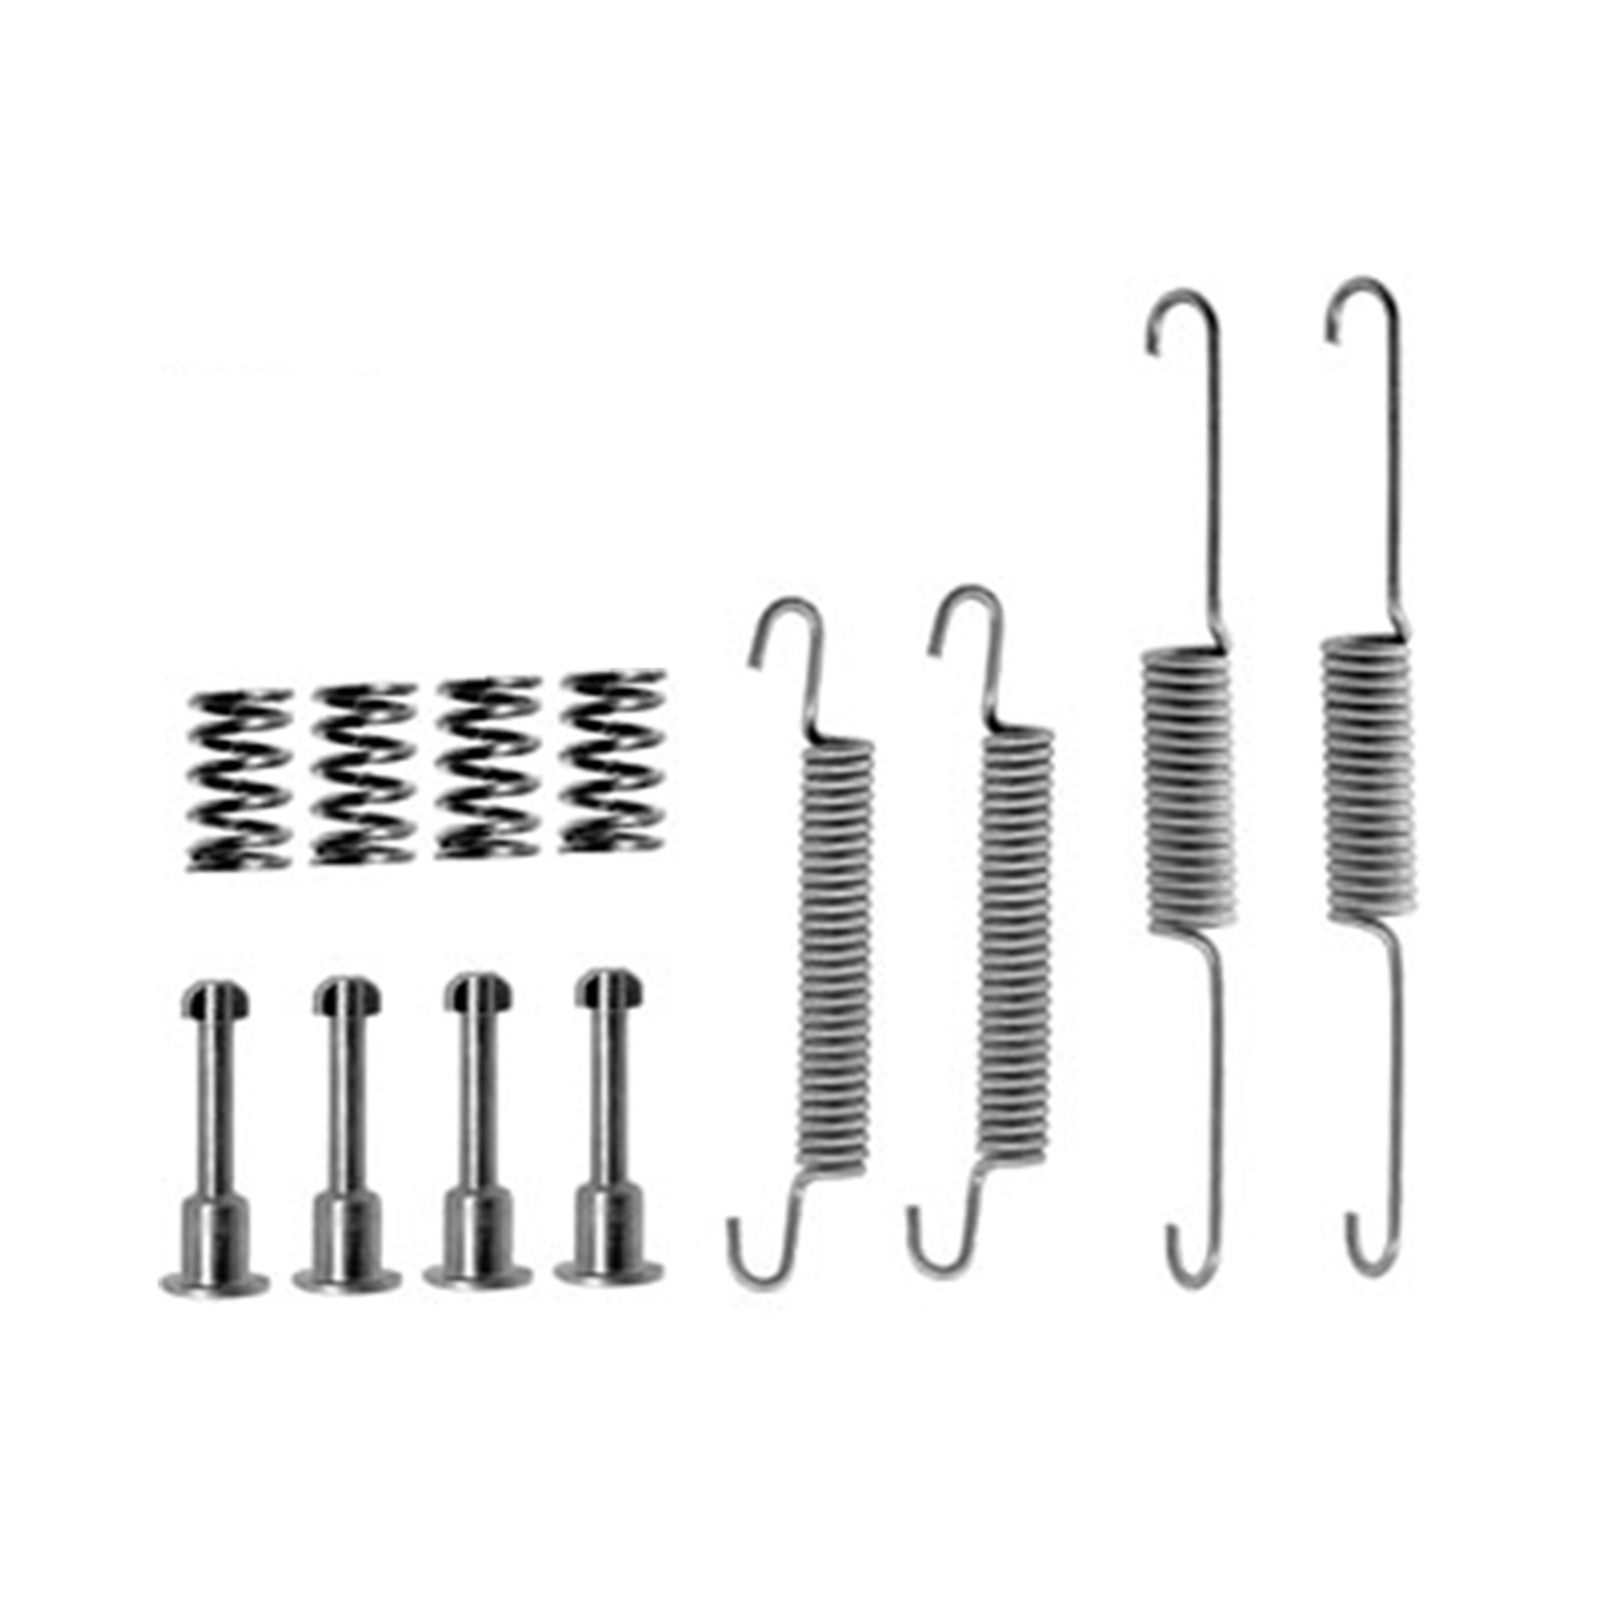 REAR HANDBRAKE SHOE FITTING KIT SPRINGS FITS: JAGUAR XJ40